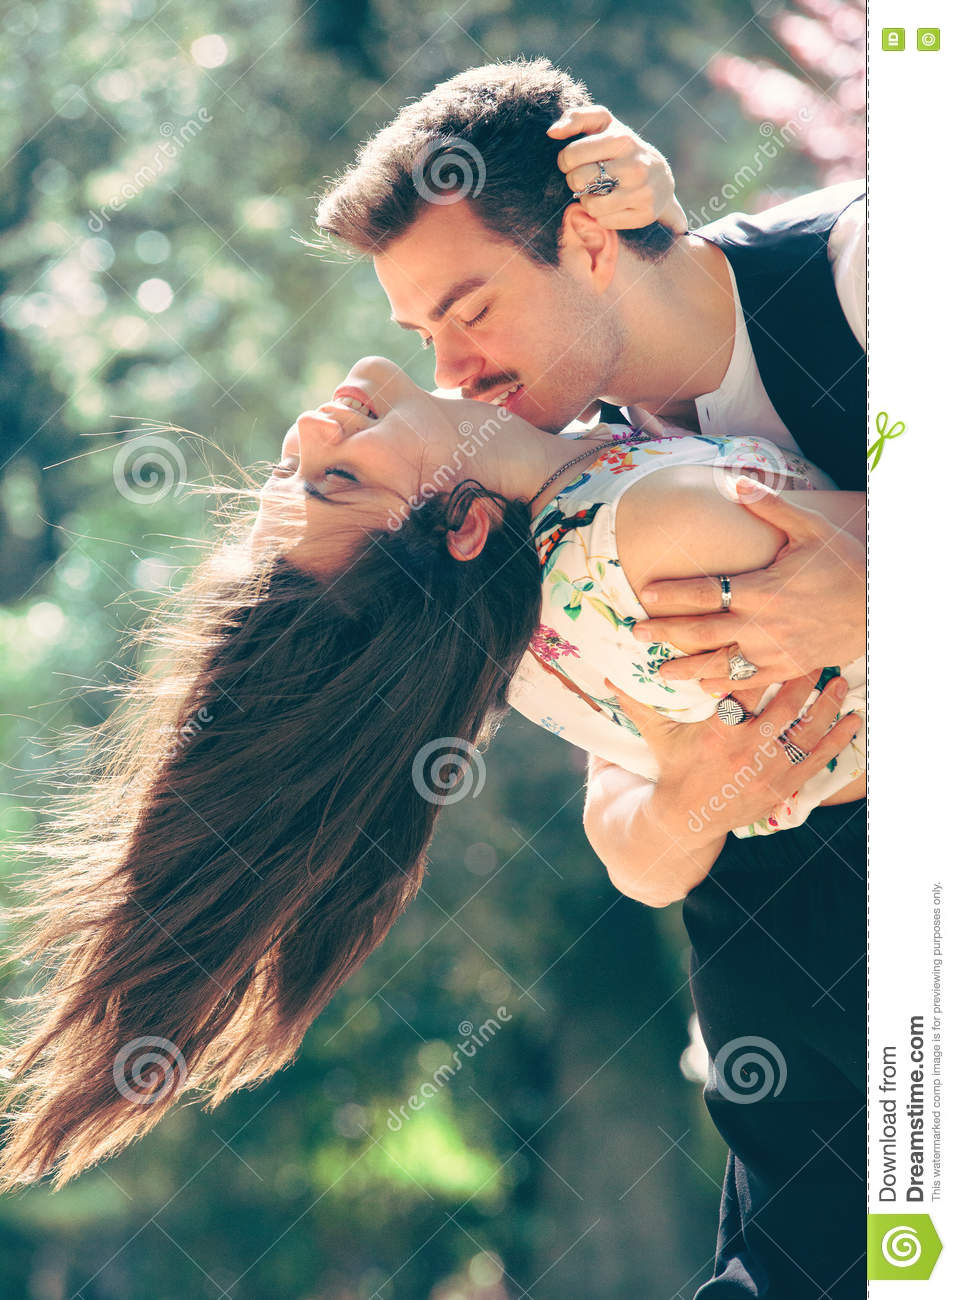 love and man Find love stock images in hd and millions of other royalty-free stock photos, illustrations, and vectors in the shutterstock collection thousands of new, high-quality pictures added every day.